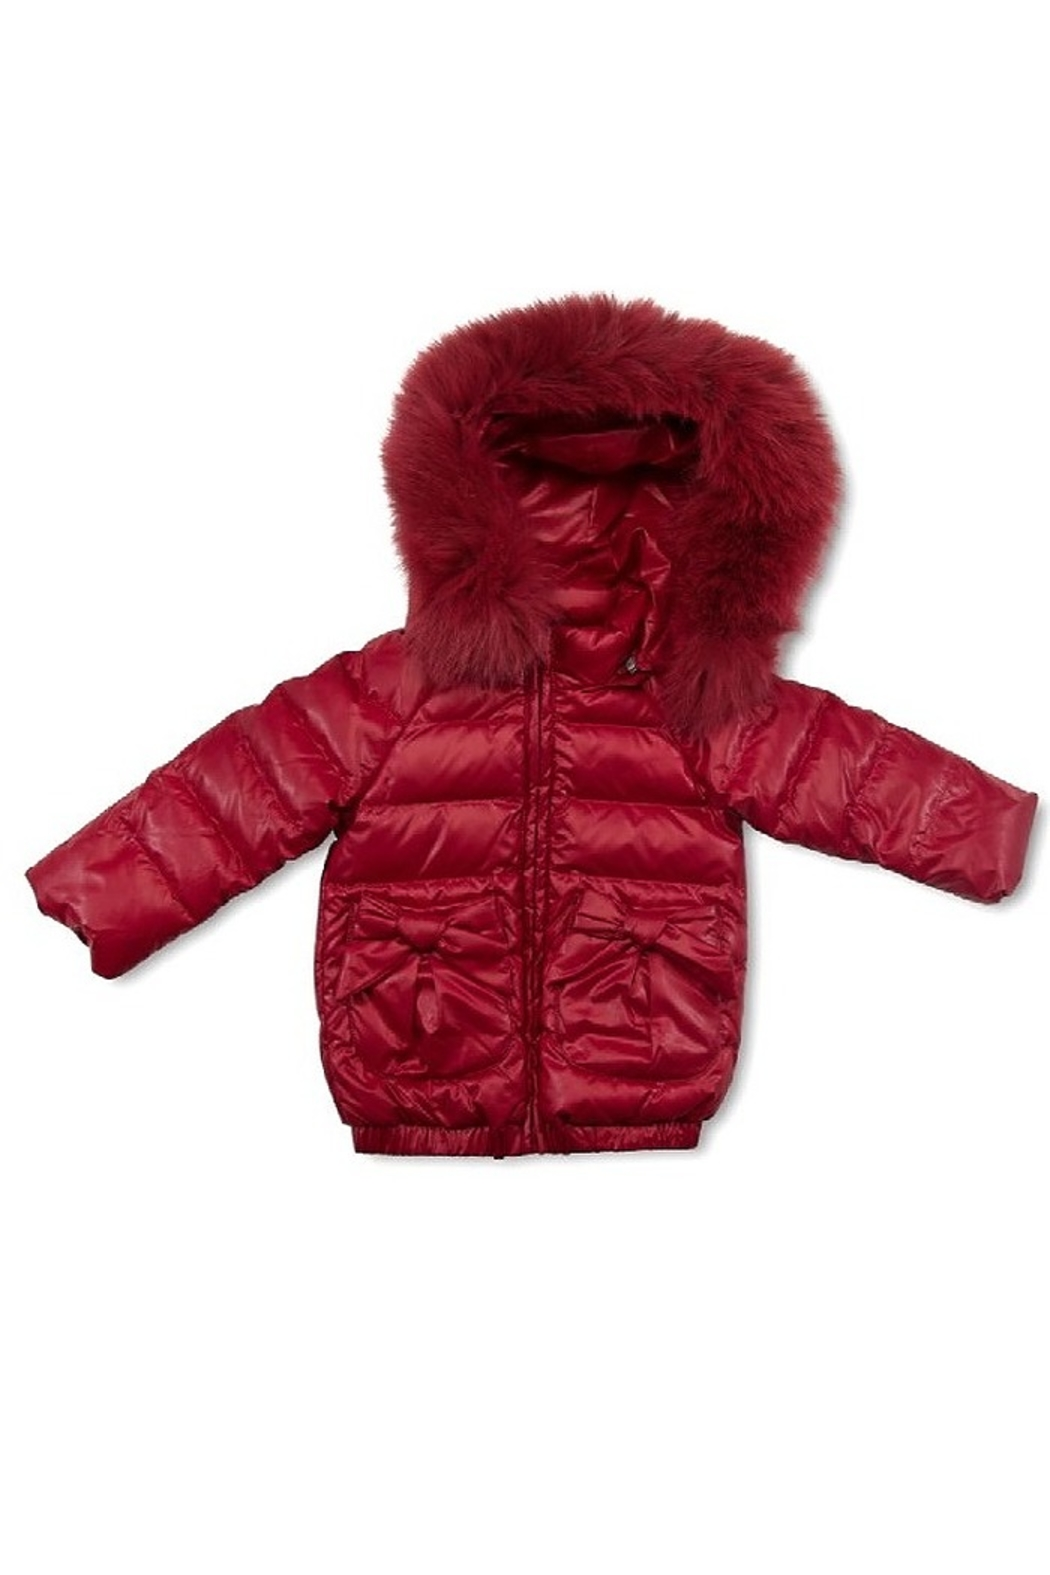 PRAMIE Pramie Down Filled Jacket with Bow Pockets for Girls | Winterwear Clothes - Front Cropped Image